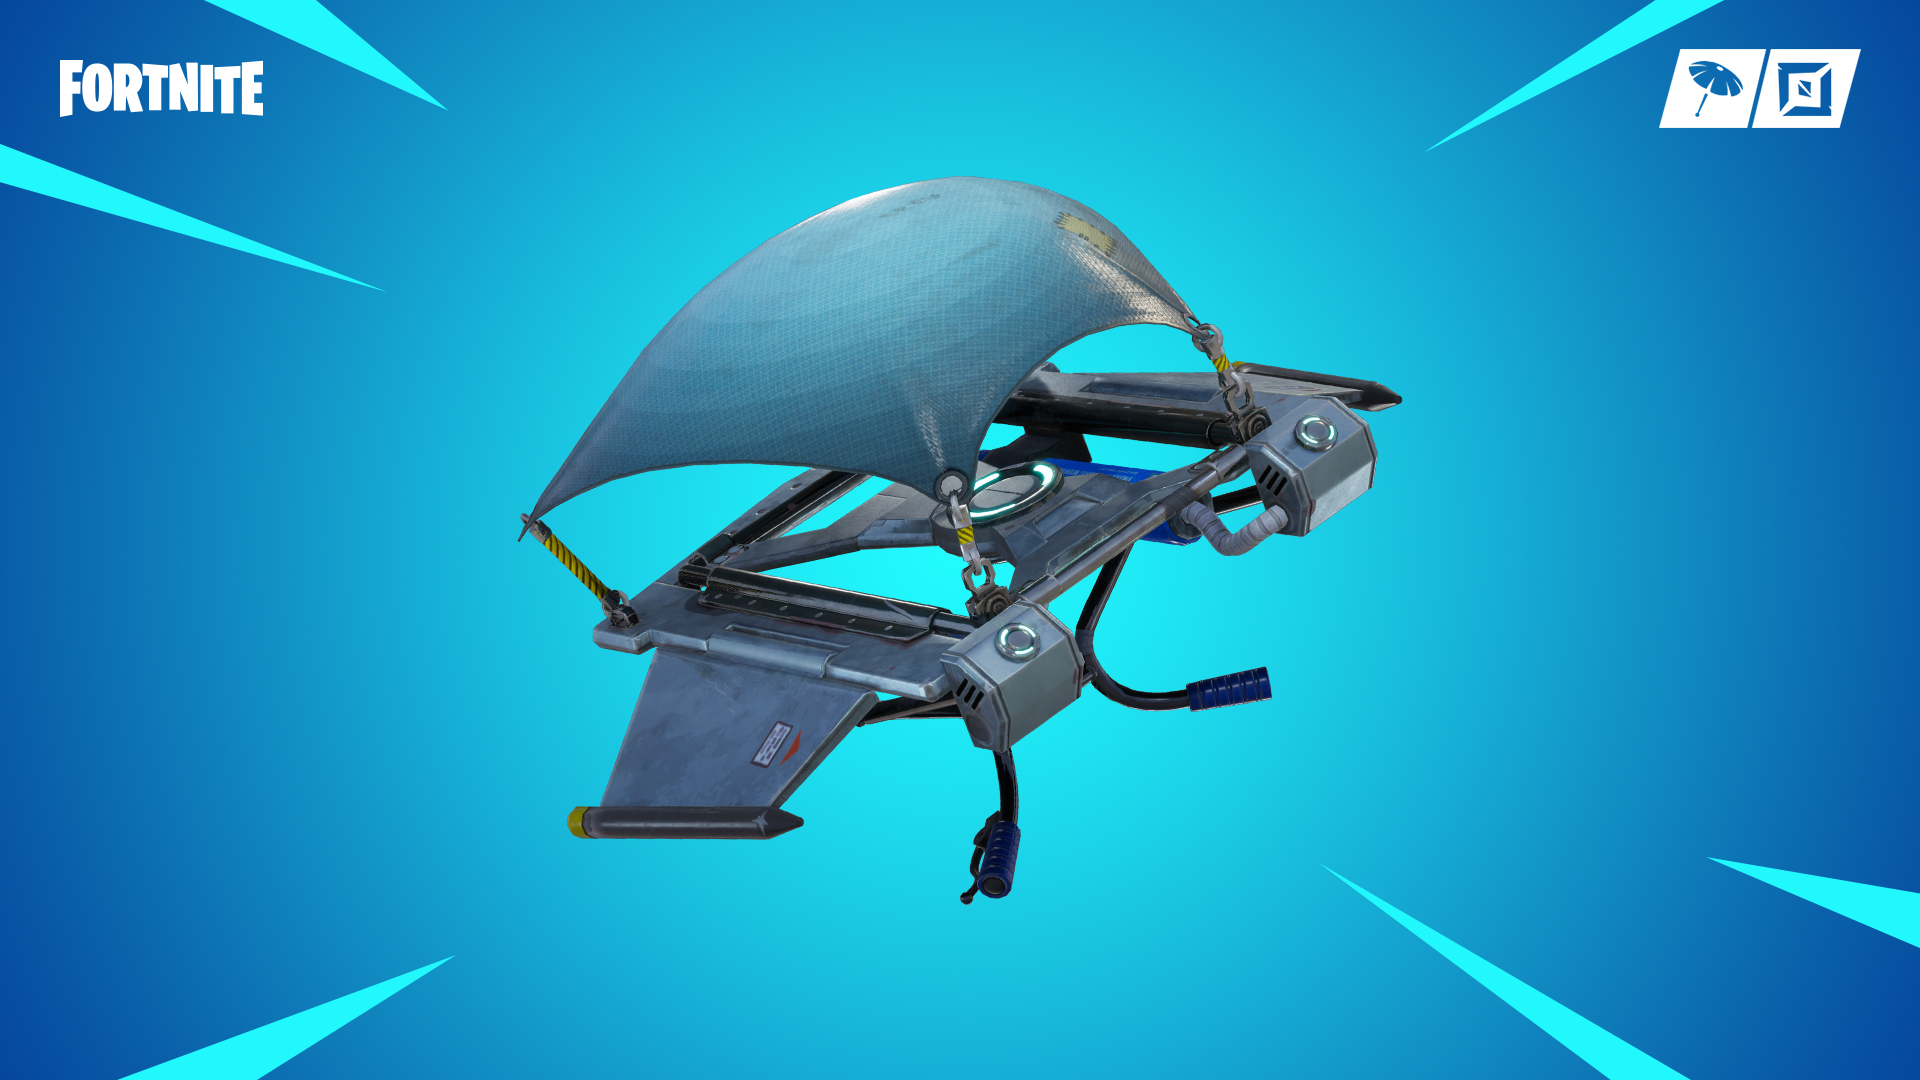 Fortnite patch brings back glider redeploy and adds scoped revolver